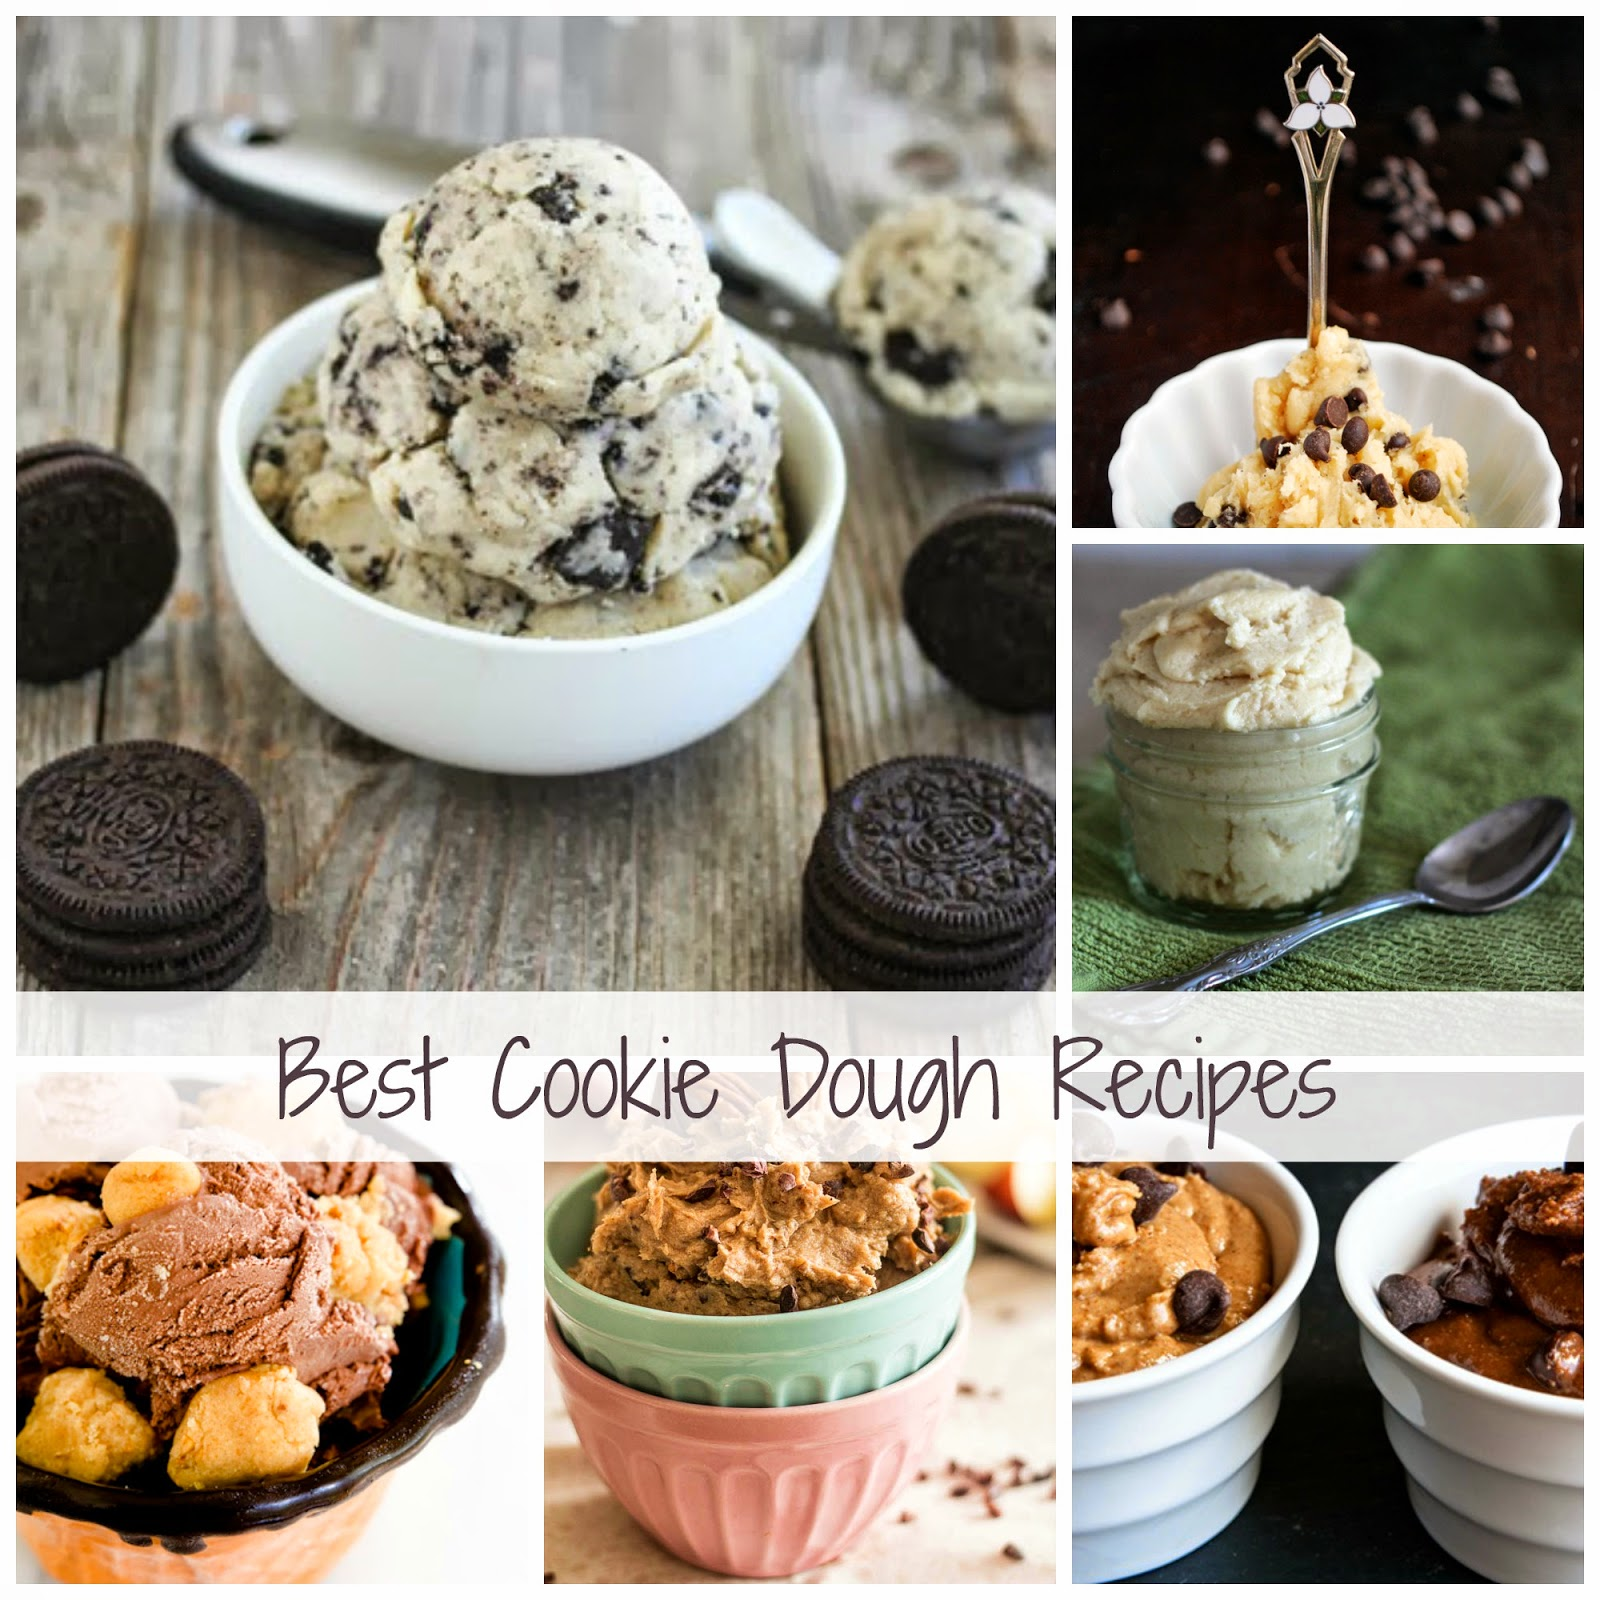 Best Cookie Dough Recipes